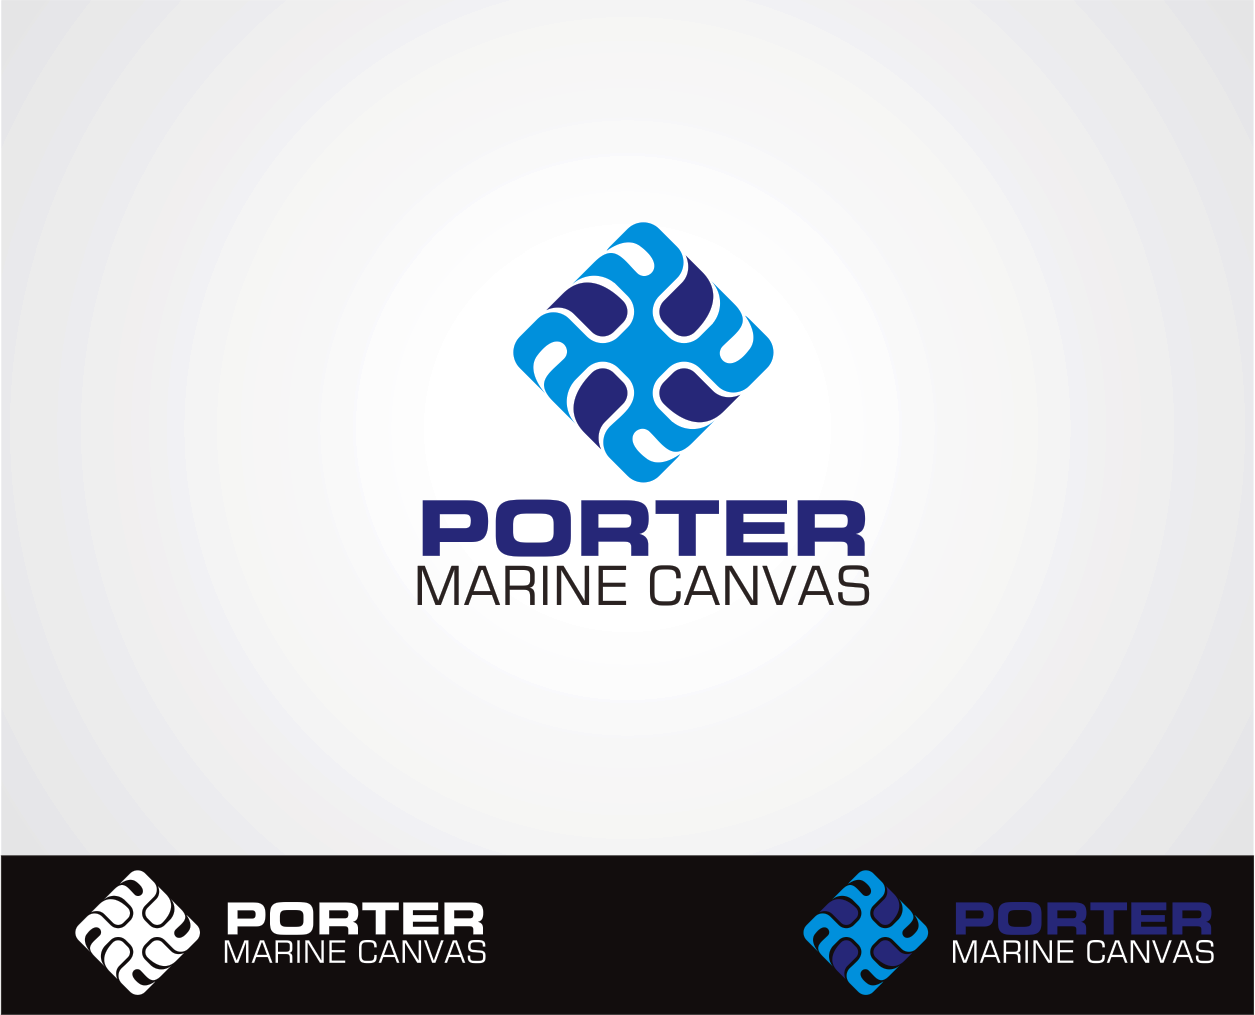 Logo Design by Armada Jamaluddin - Entry No. 194 in the Logo Design Contest Imaginative Logo Design for Porter Marine Canvas.